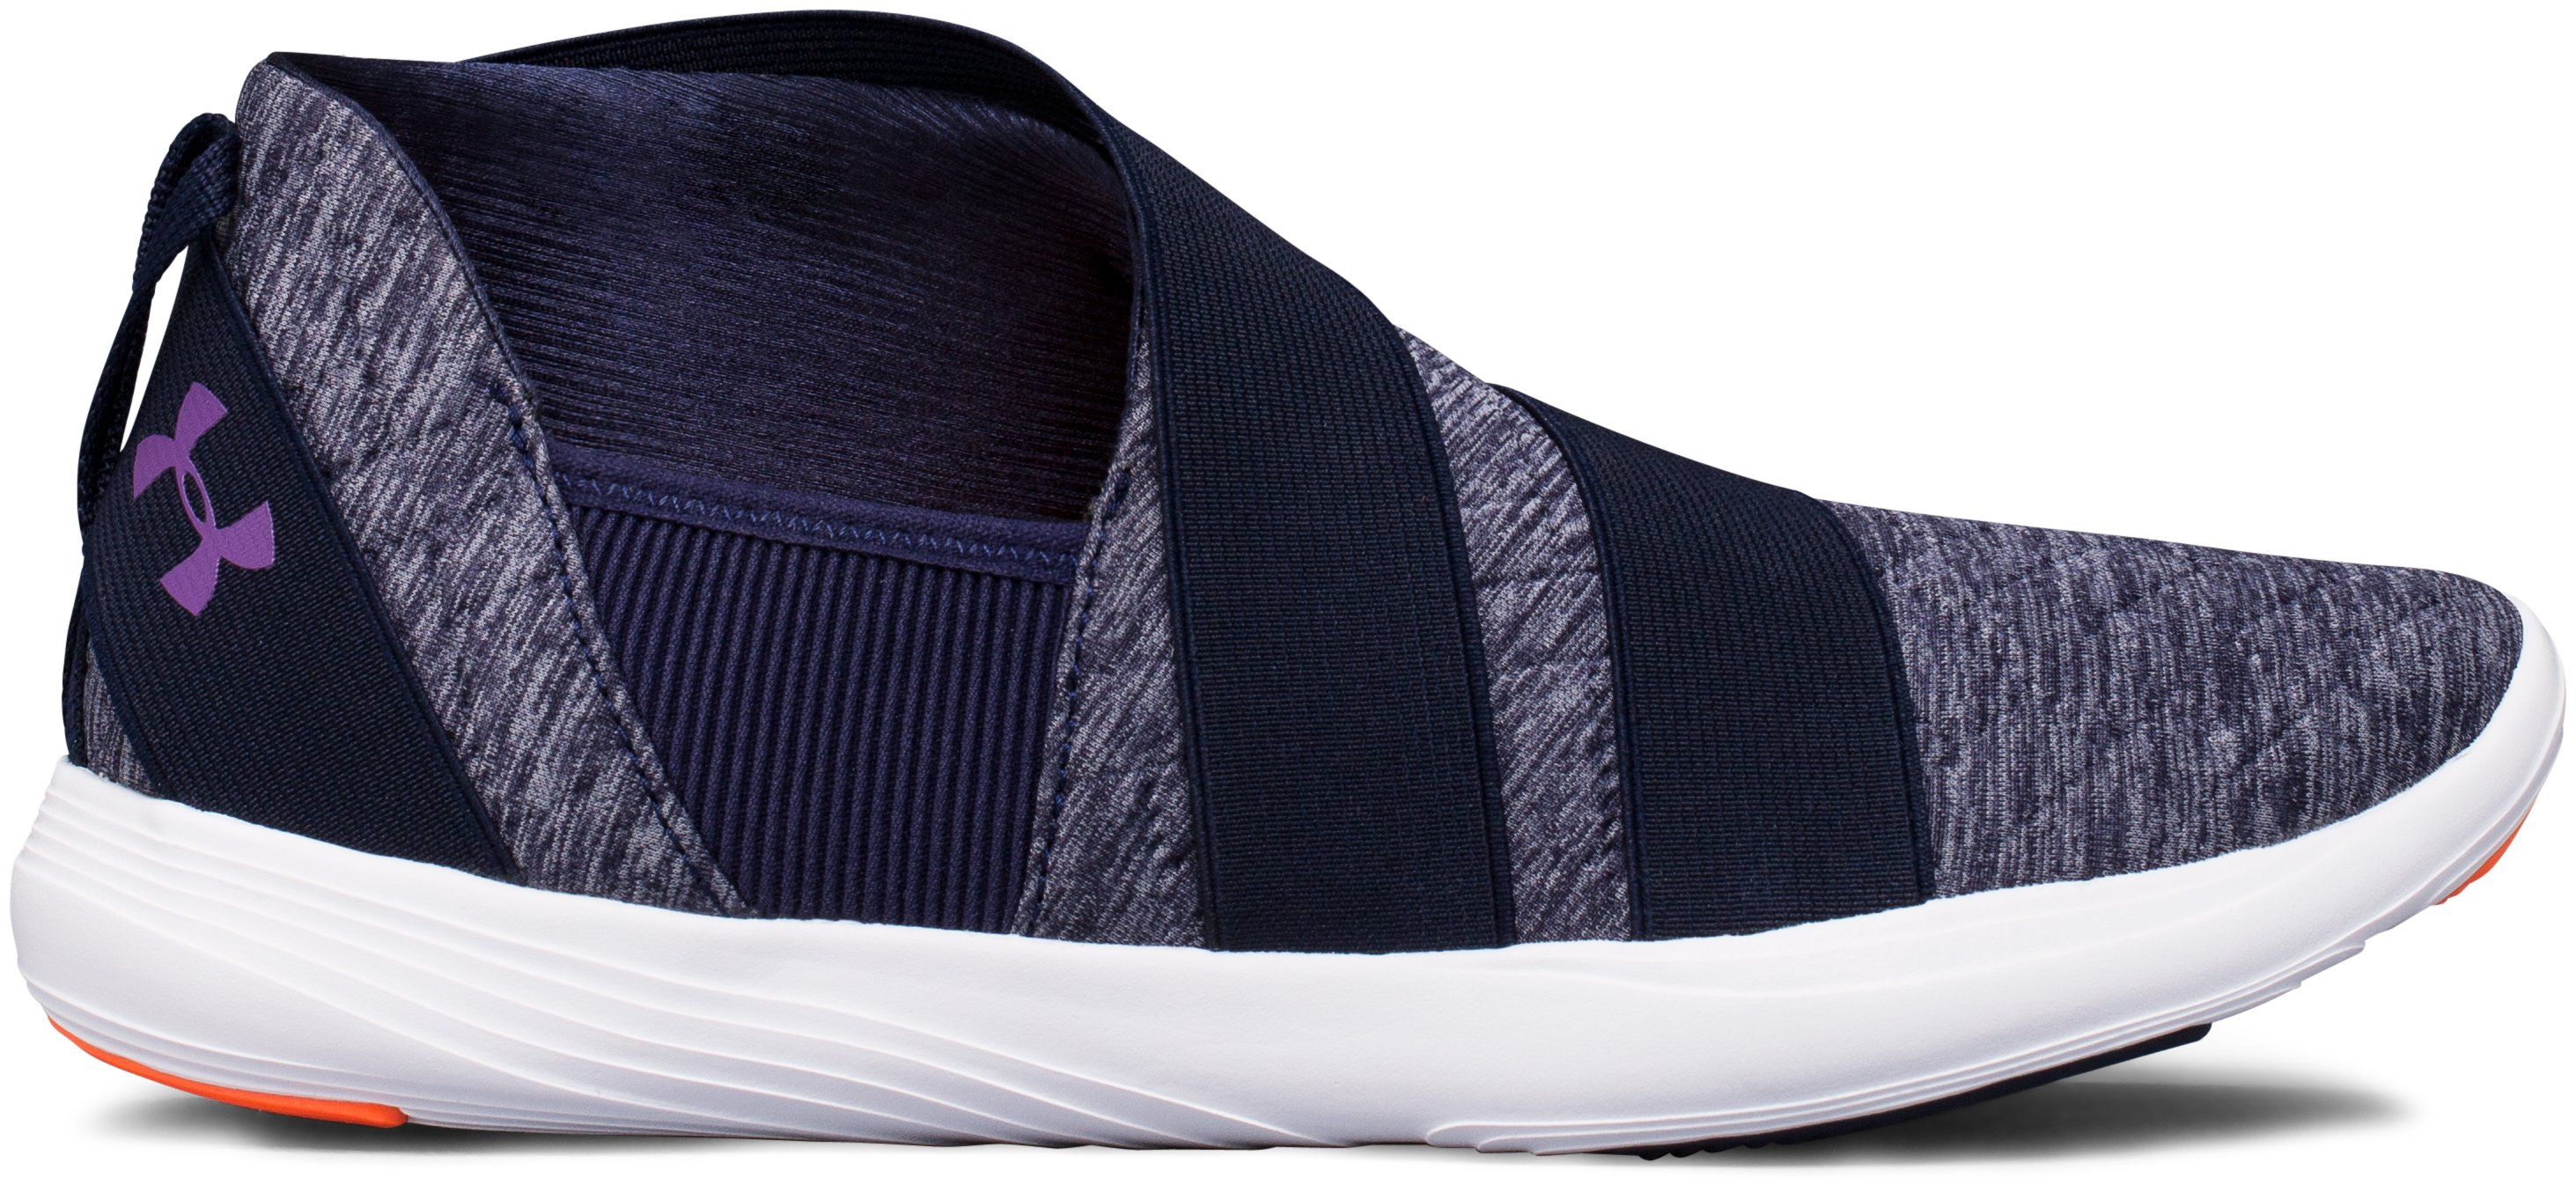 , Midnight Navy, zoomed